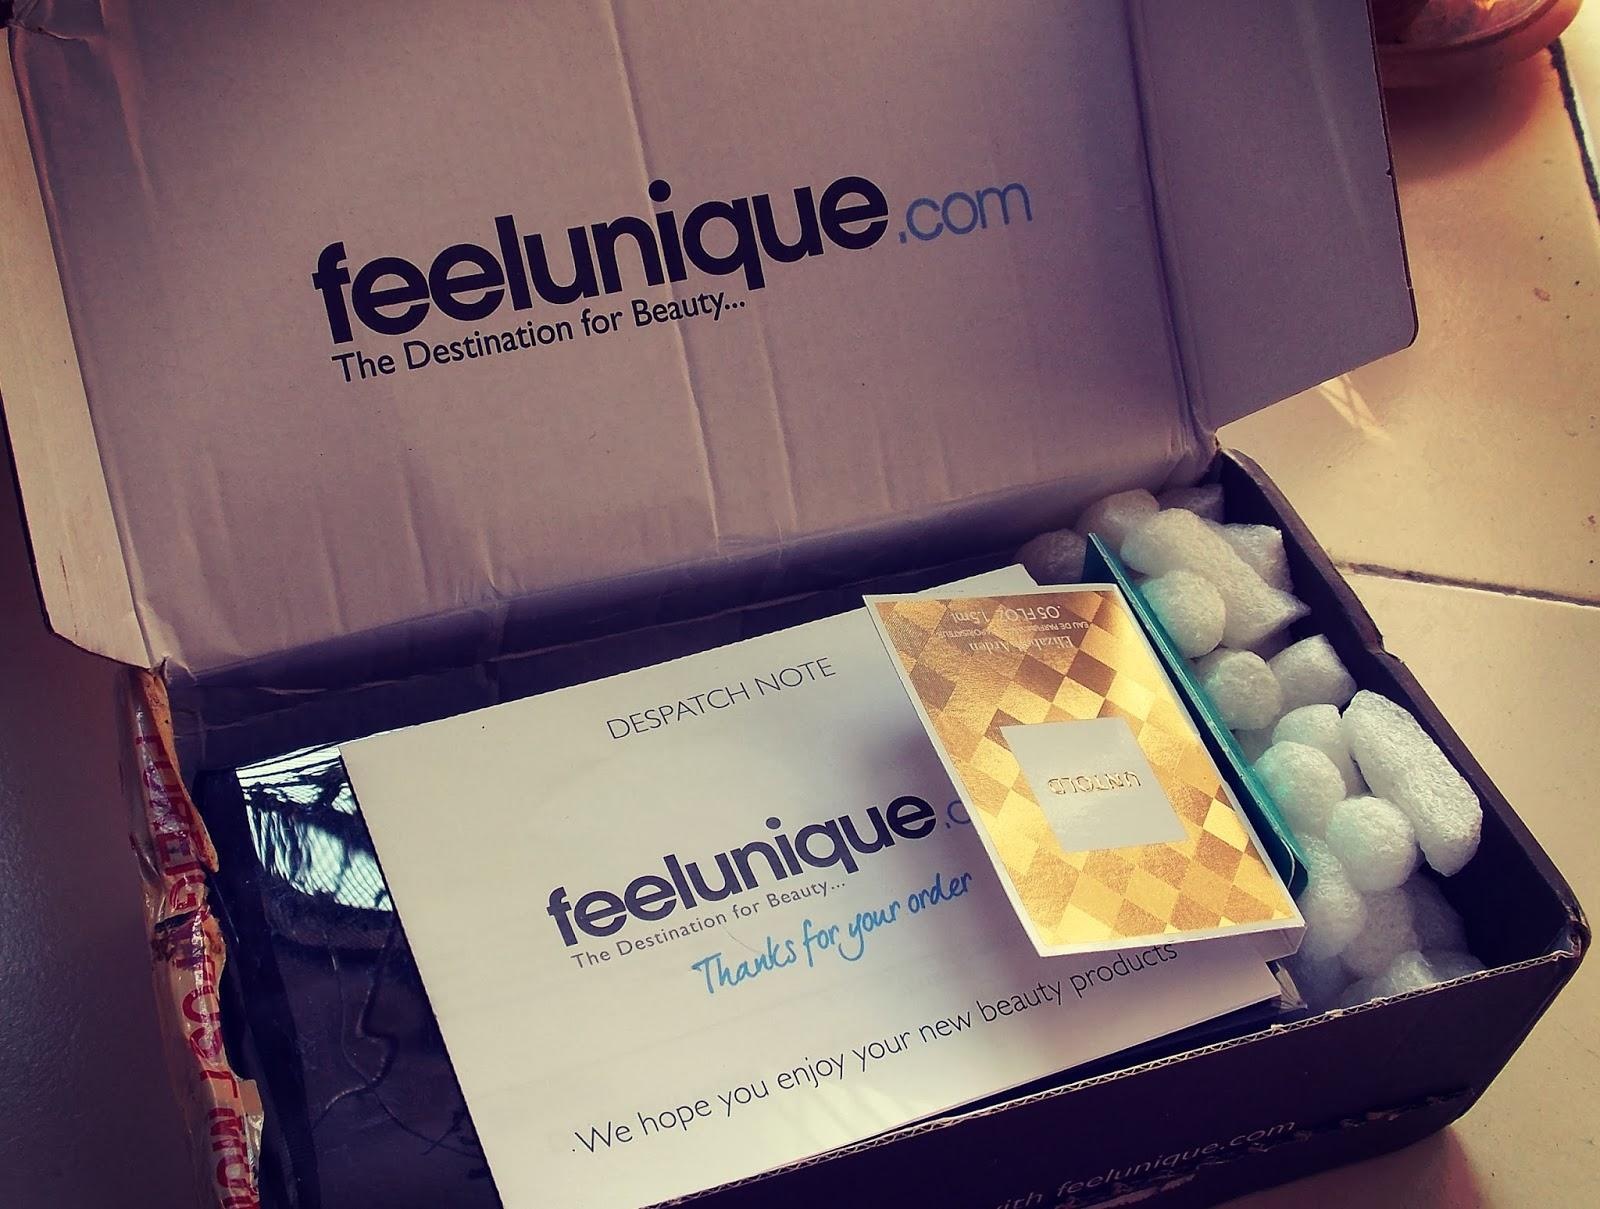 feelunique promo box